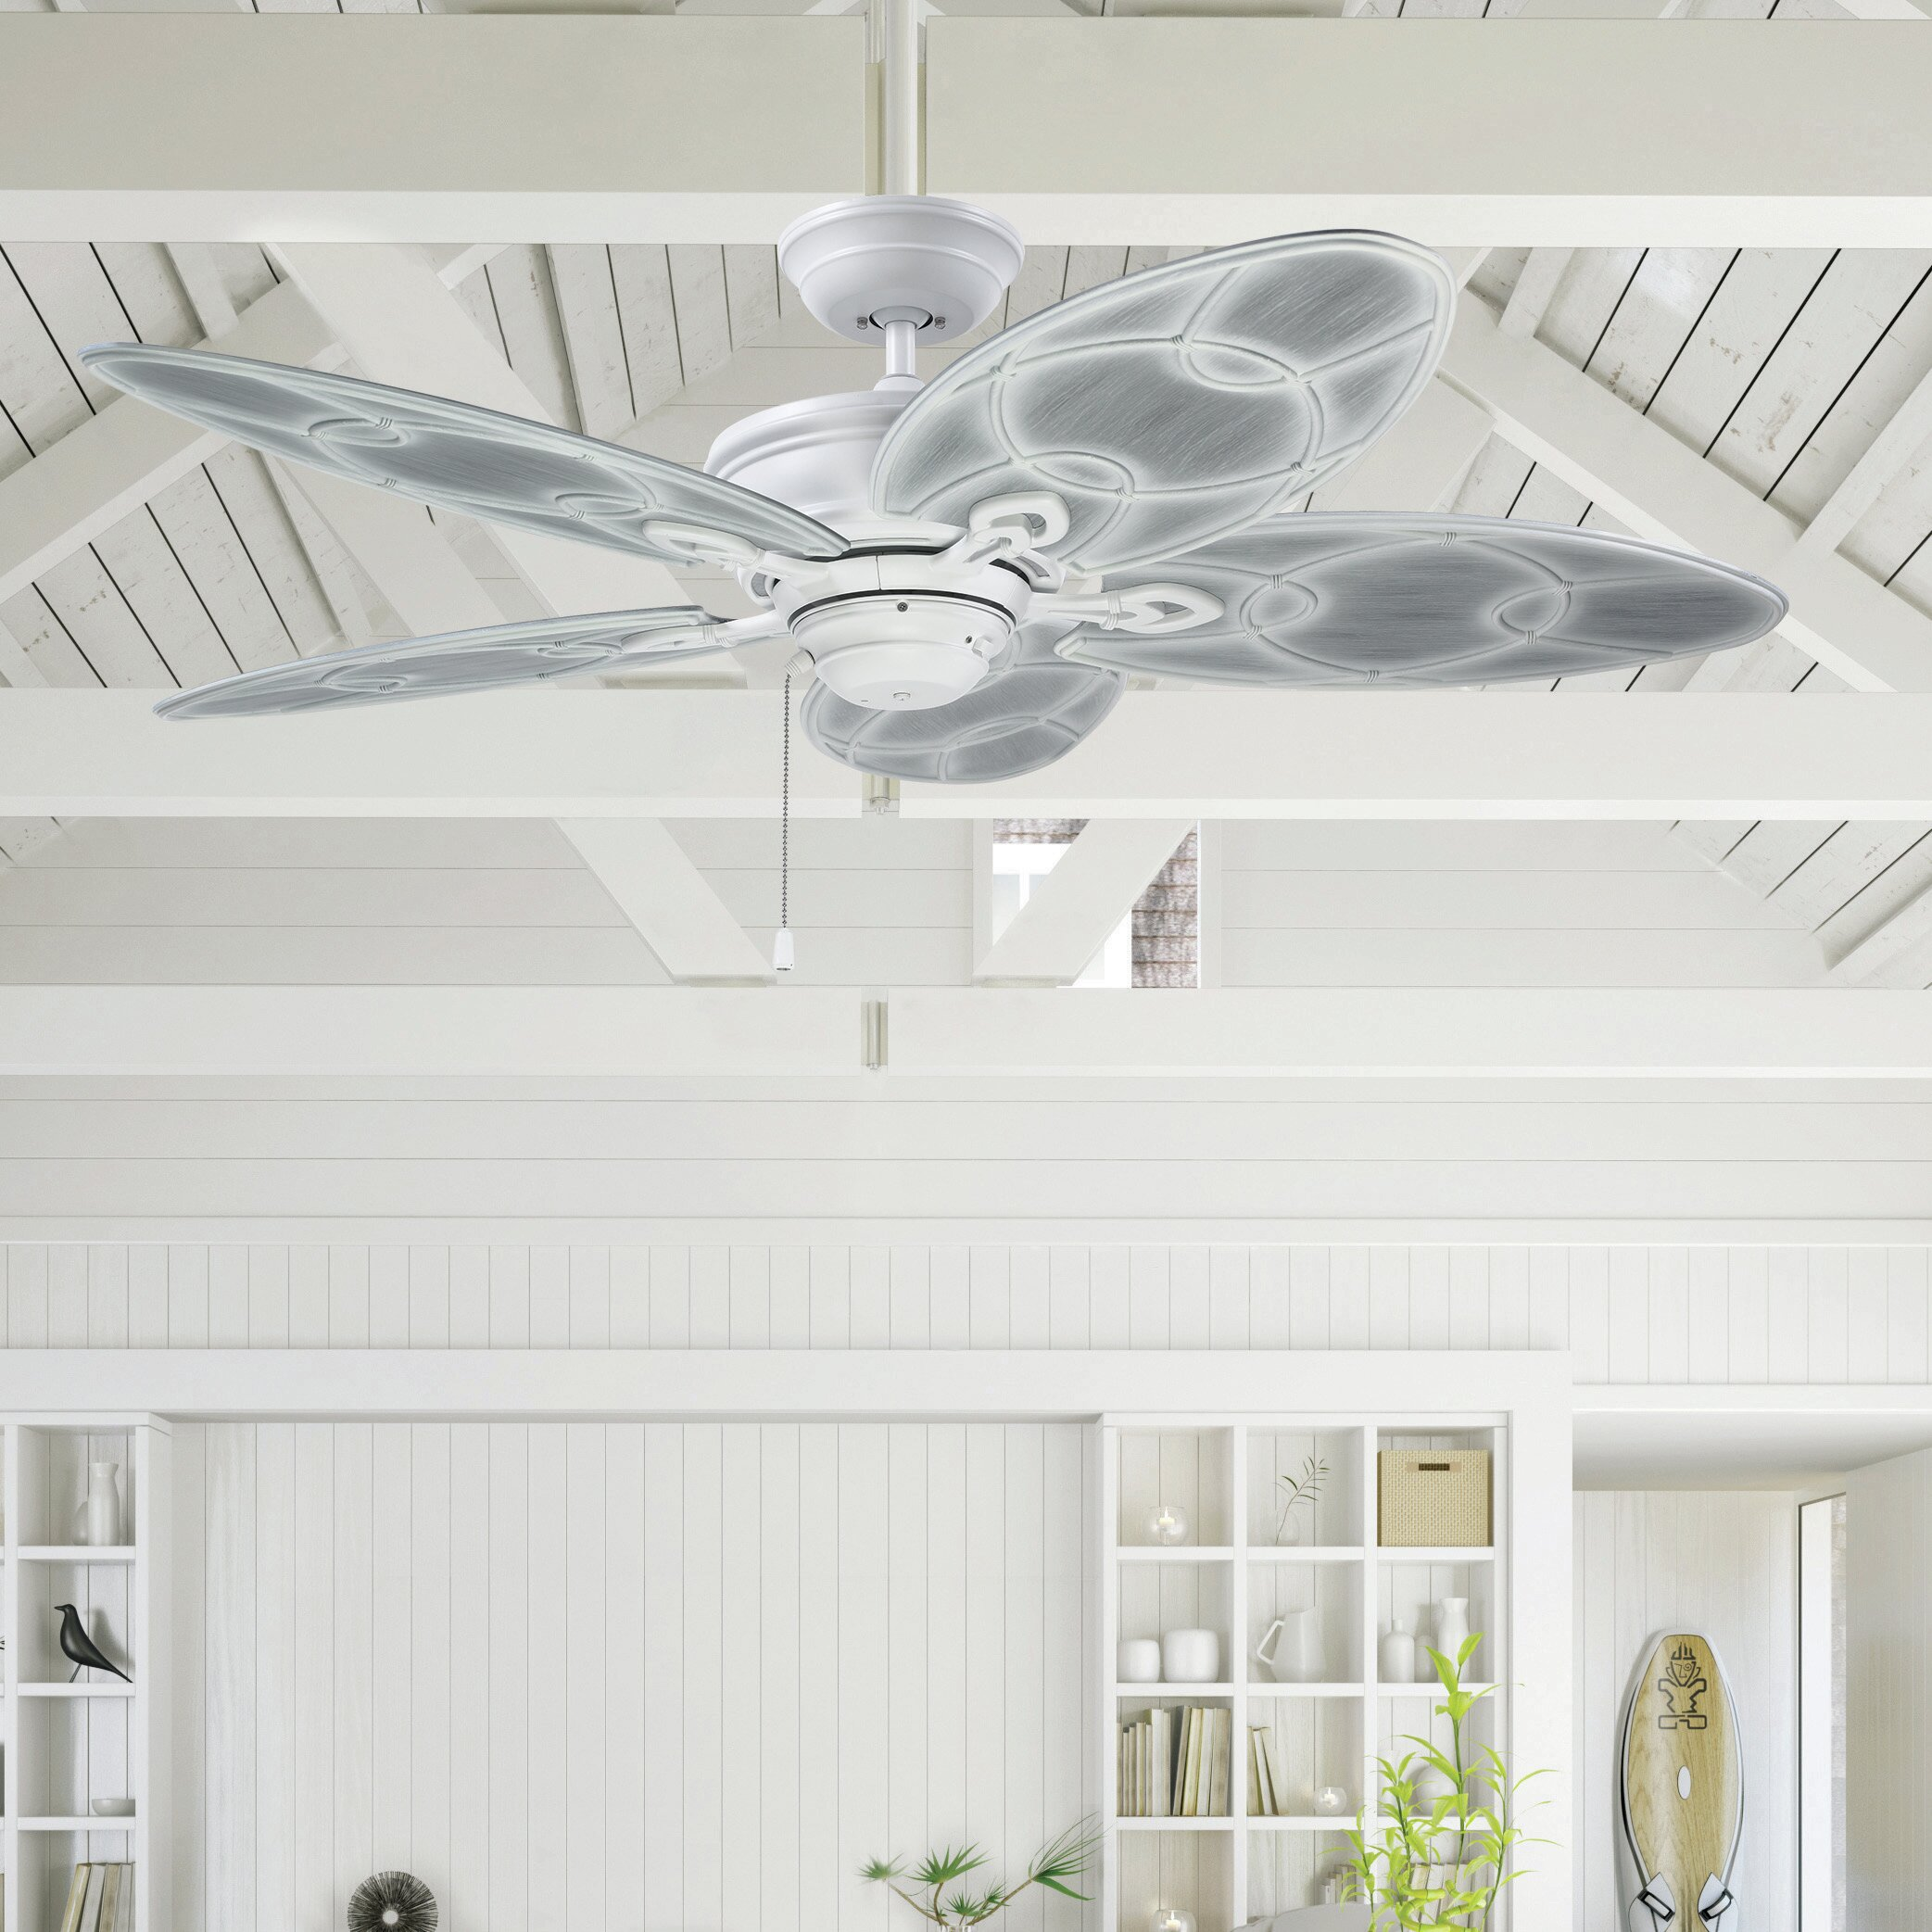 ideas interior light design beautiful contemporary awesome for rooms lighting of lights ceiling fan photos fans small white with extraordinary outdoor